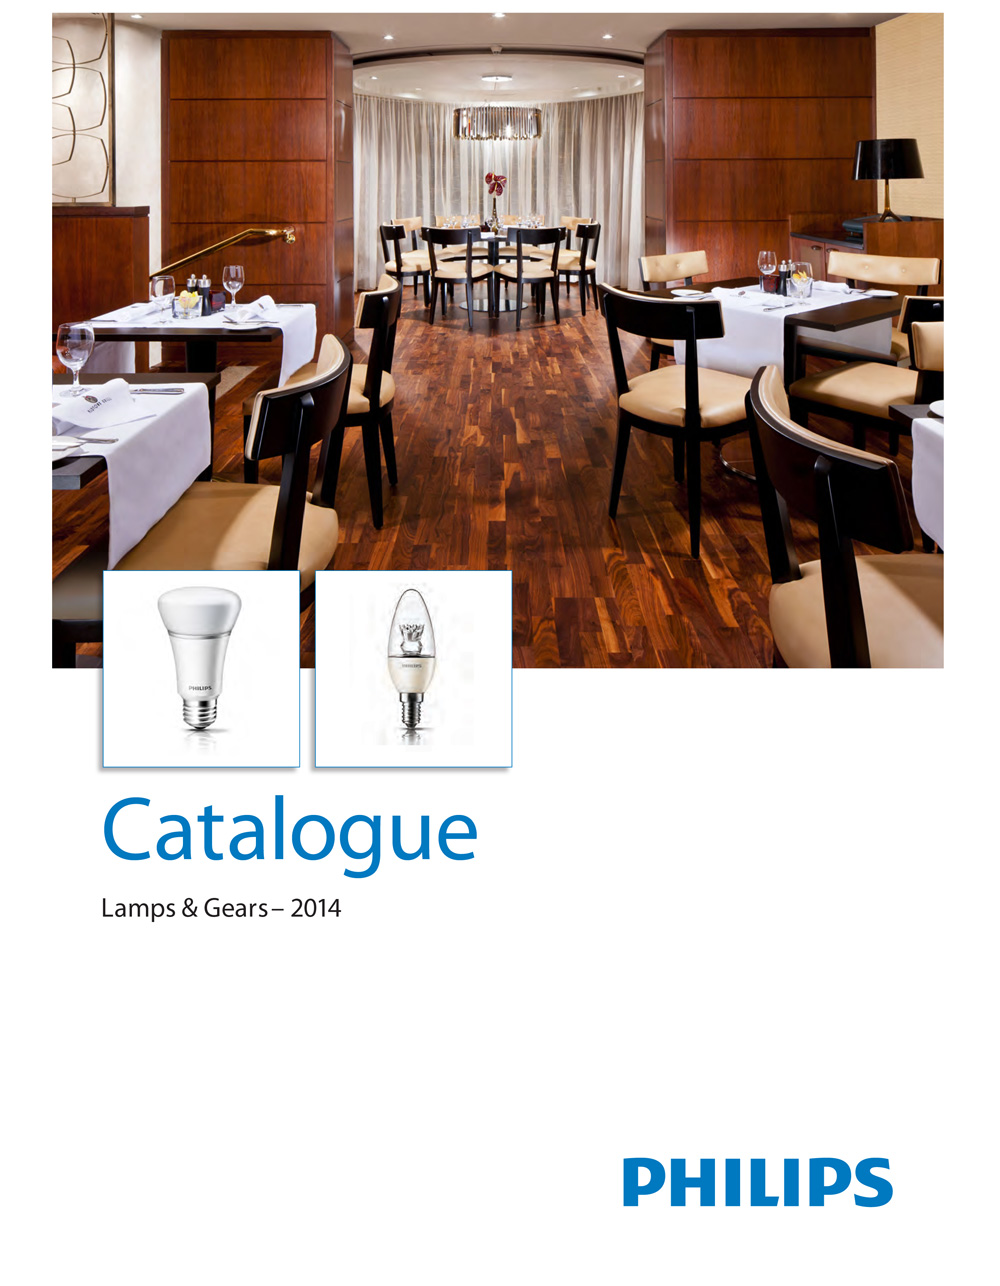 Philips Lamps & Gears 2014 Catalogue